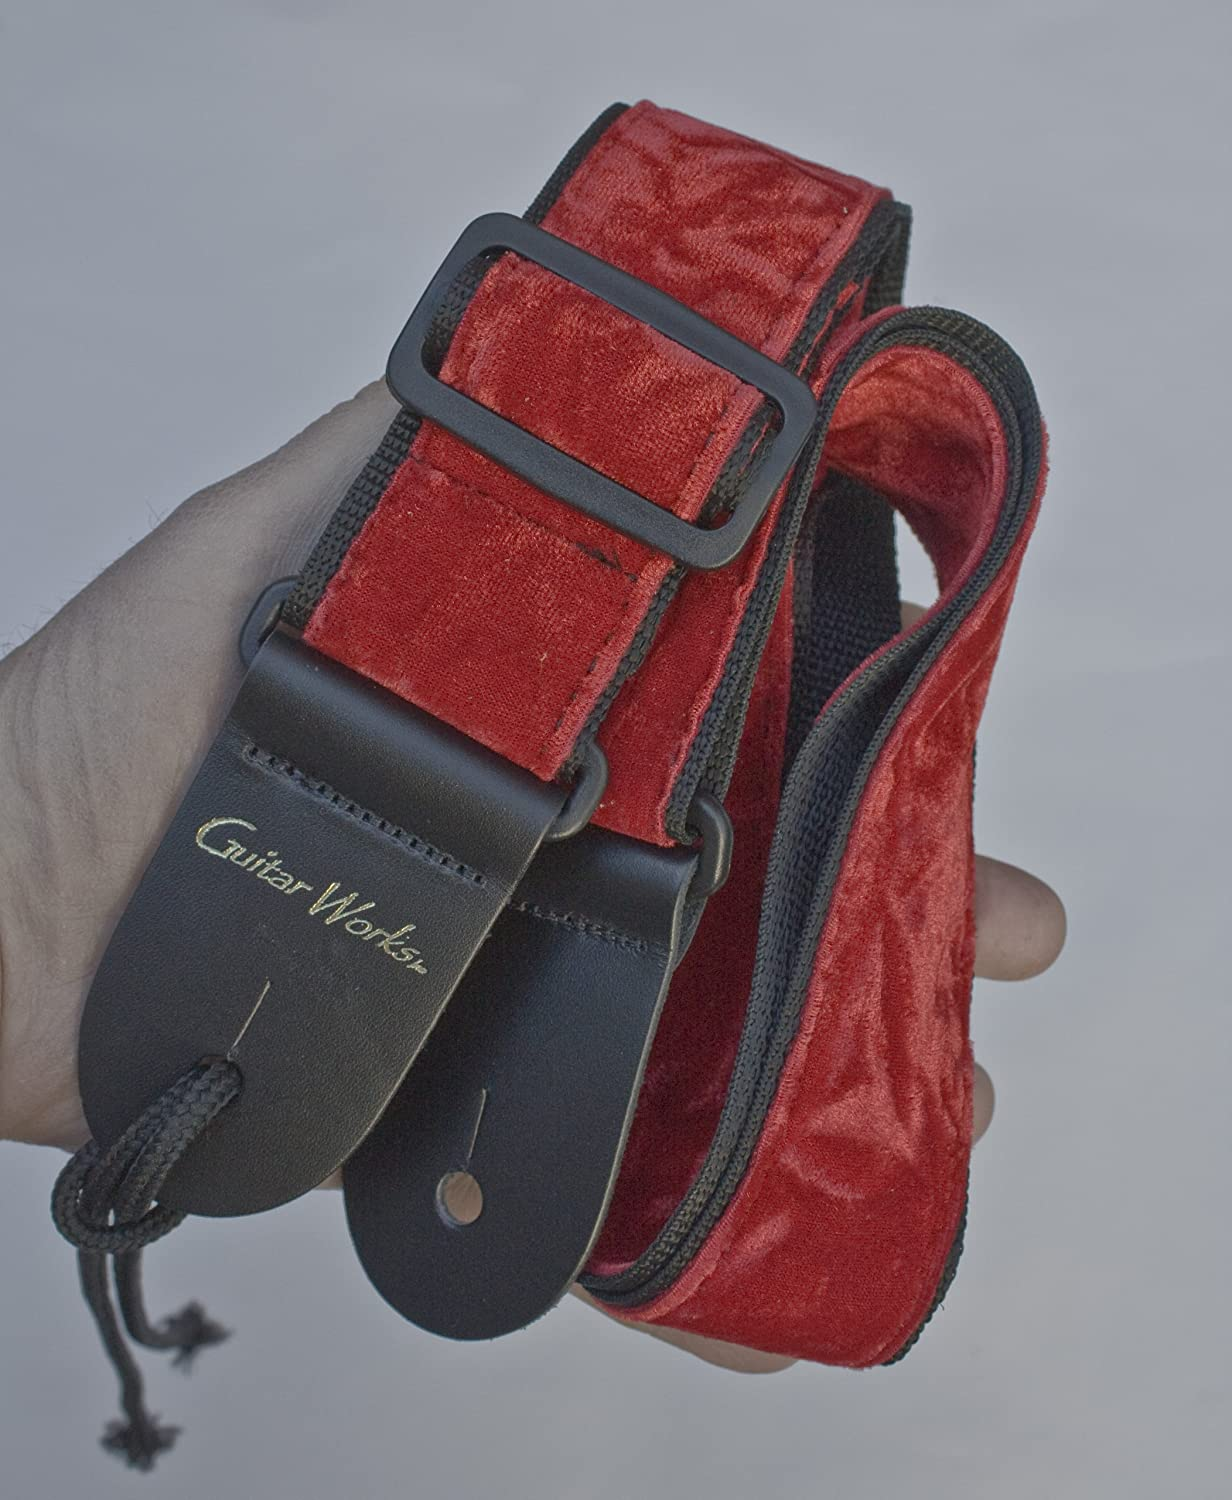 Guitar Strap Soft Red Velvet On Black Nylon Solid Leather Ends Fits All Acoustic /& Electric /& Bass Made In U.S.A.